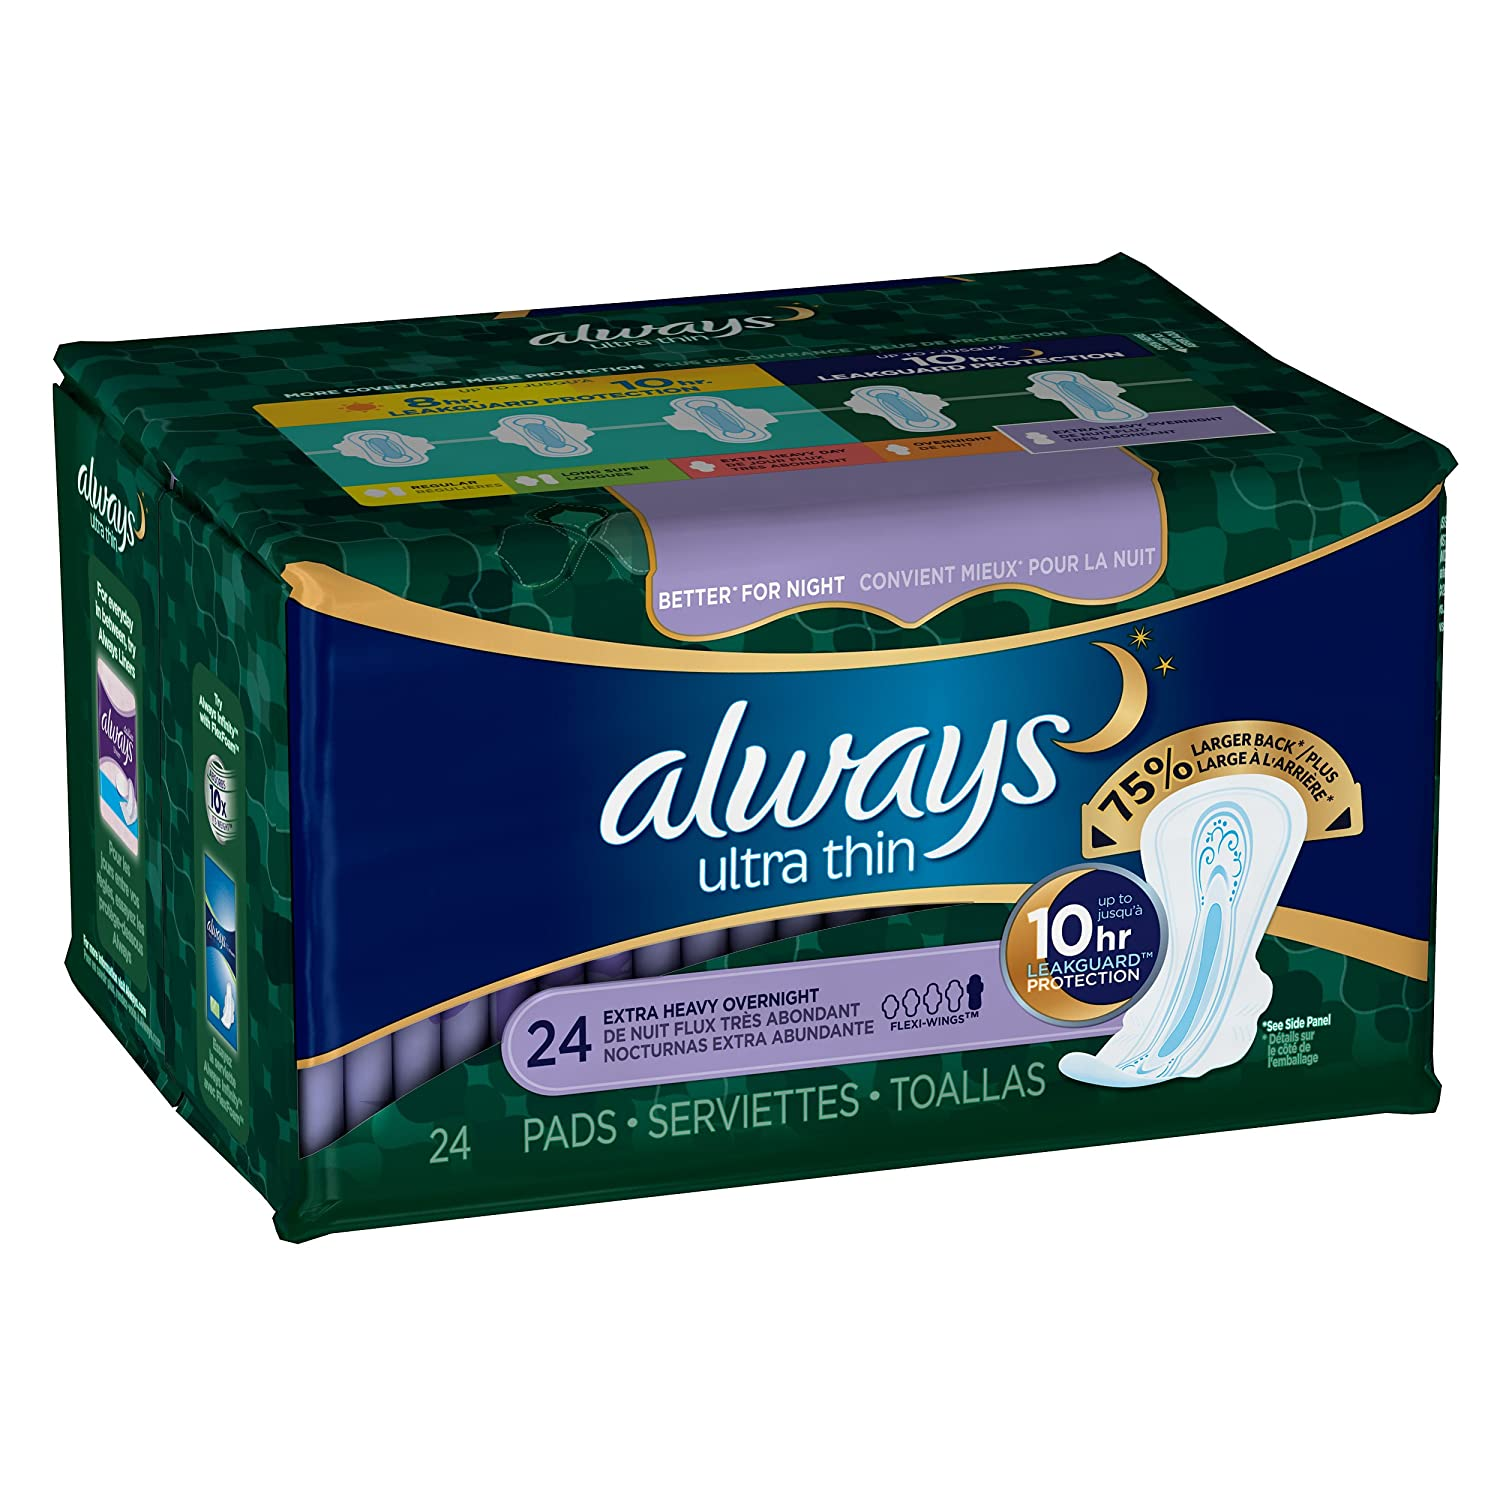 Amazon.com: Always Ultra Thin Extra Heavy Overnight Pads, 24 Count: Health & Personal Care